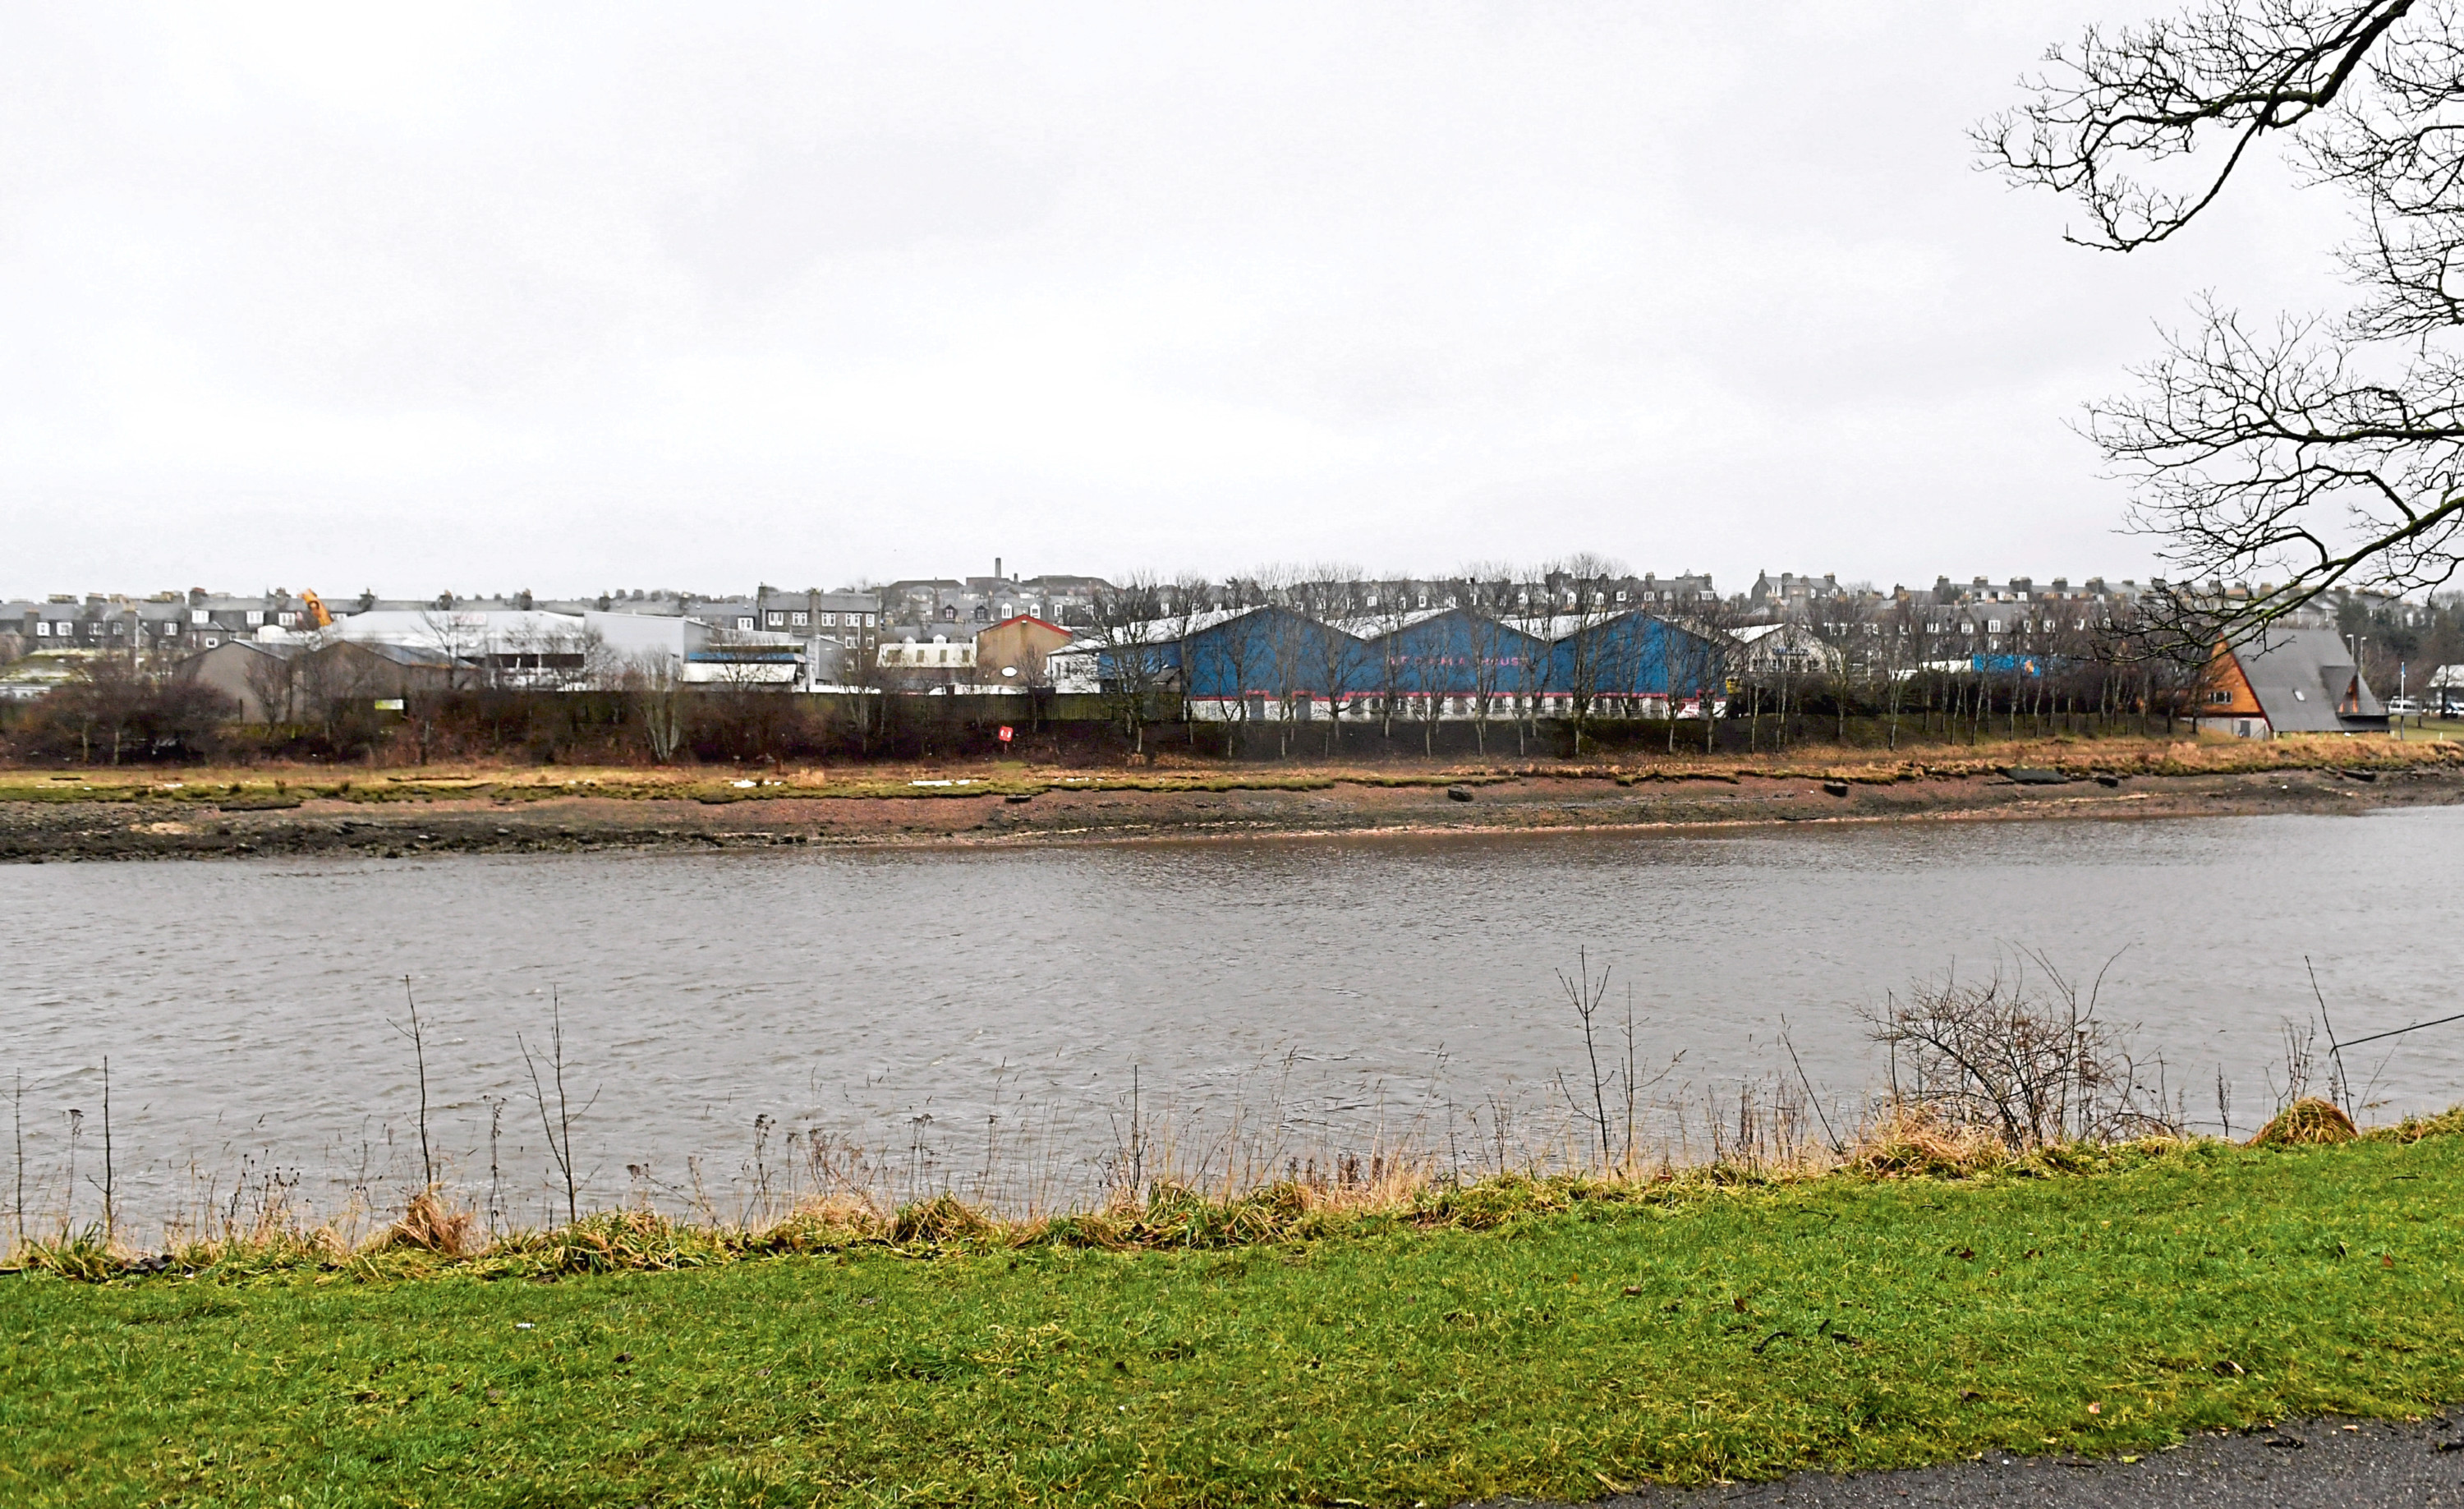 The planned location for the new homes near the River Dee